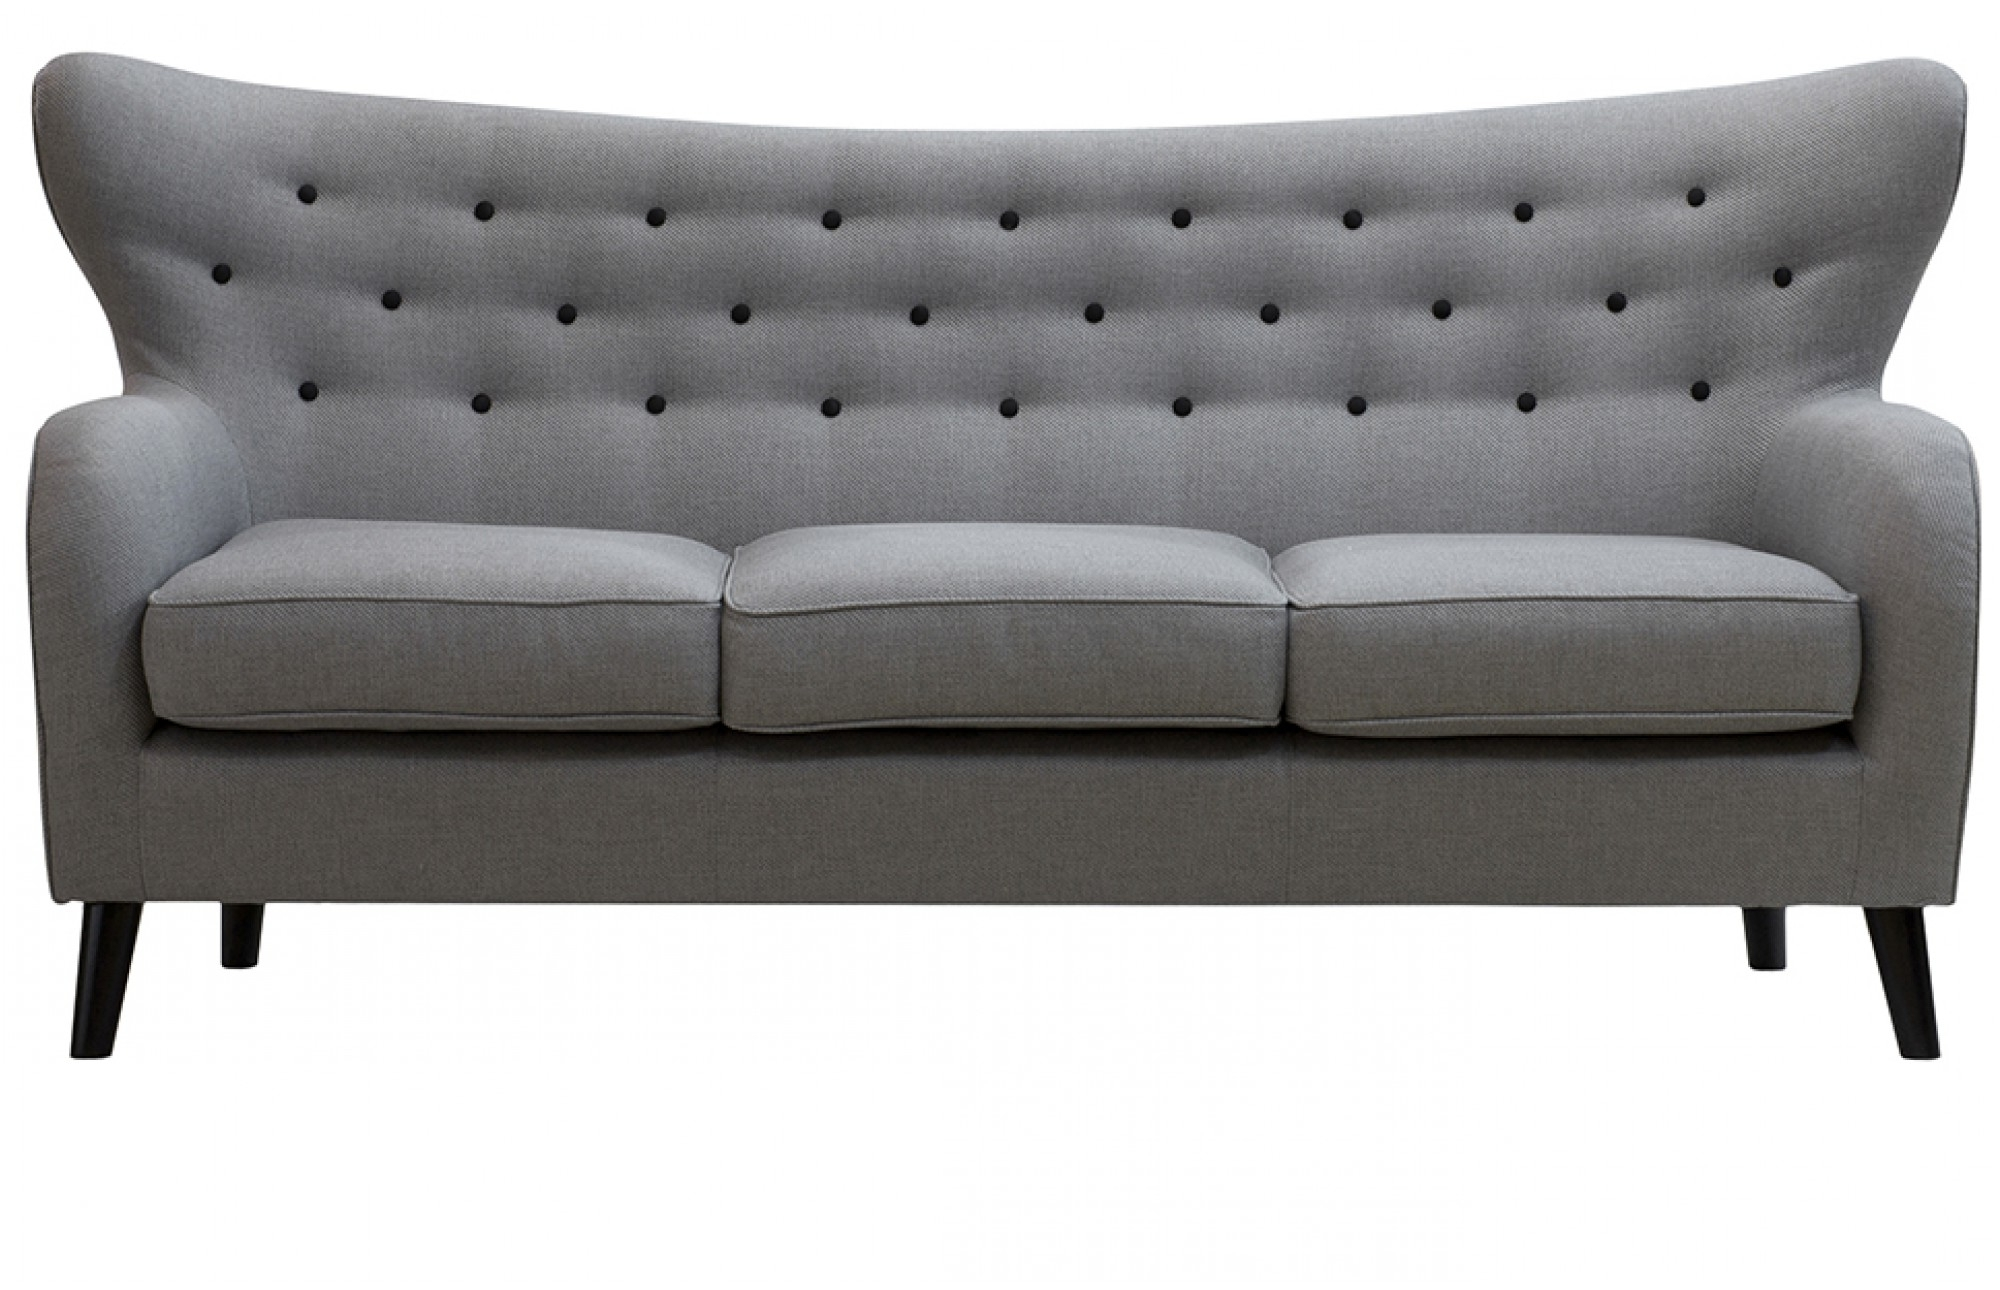 Fashionable Modern 3 Seater Sofas Pertaining To Sofa : 3 Seater Sofa Loose Covers 3 Seater Sofa Gold Coast (View 16 of 20)